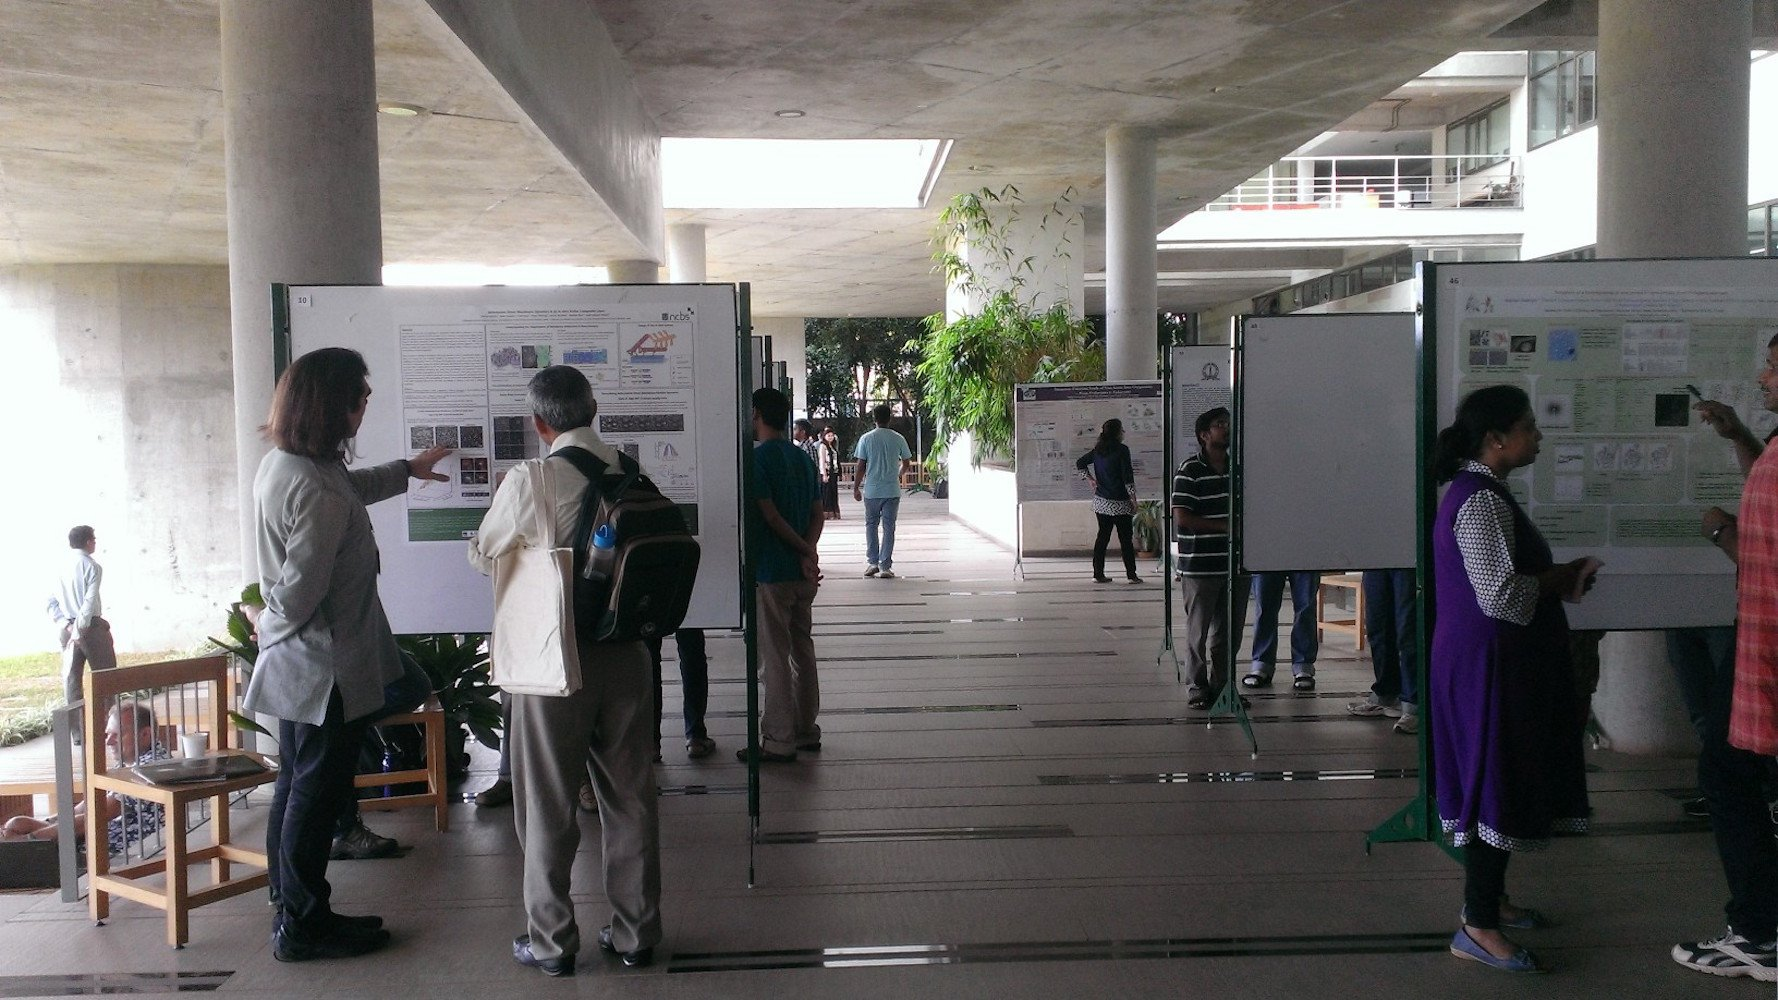 Poster session at the colonnade